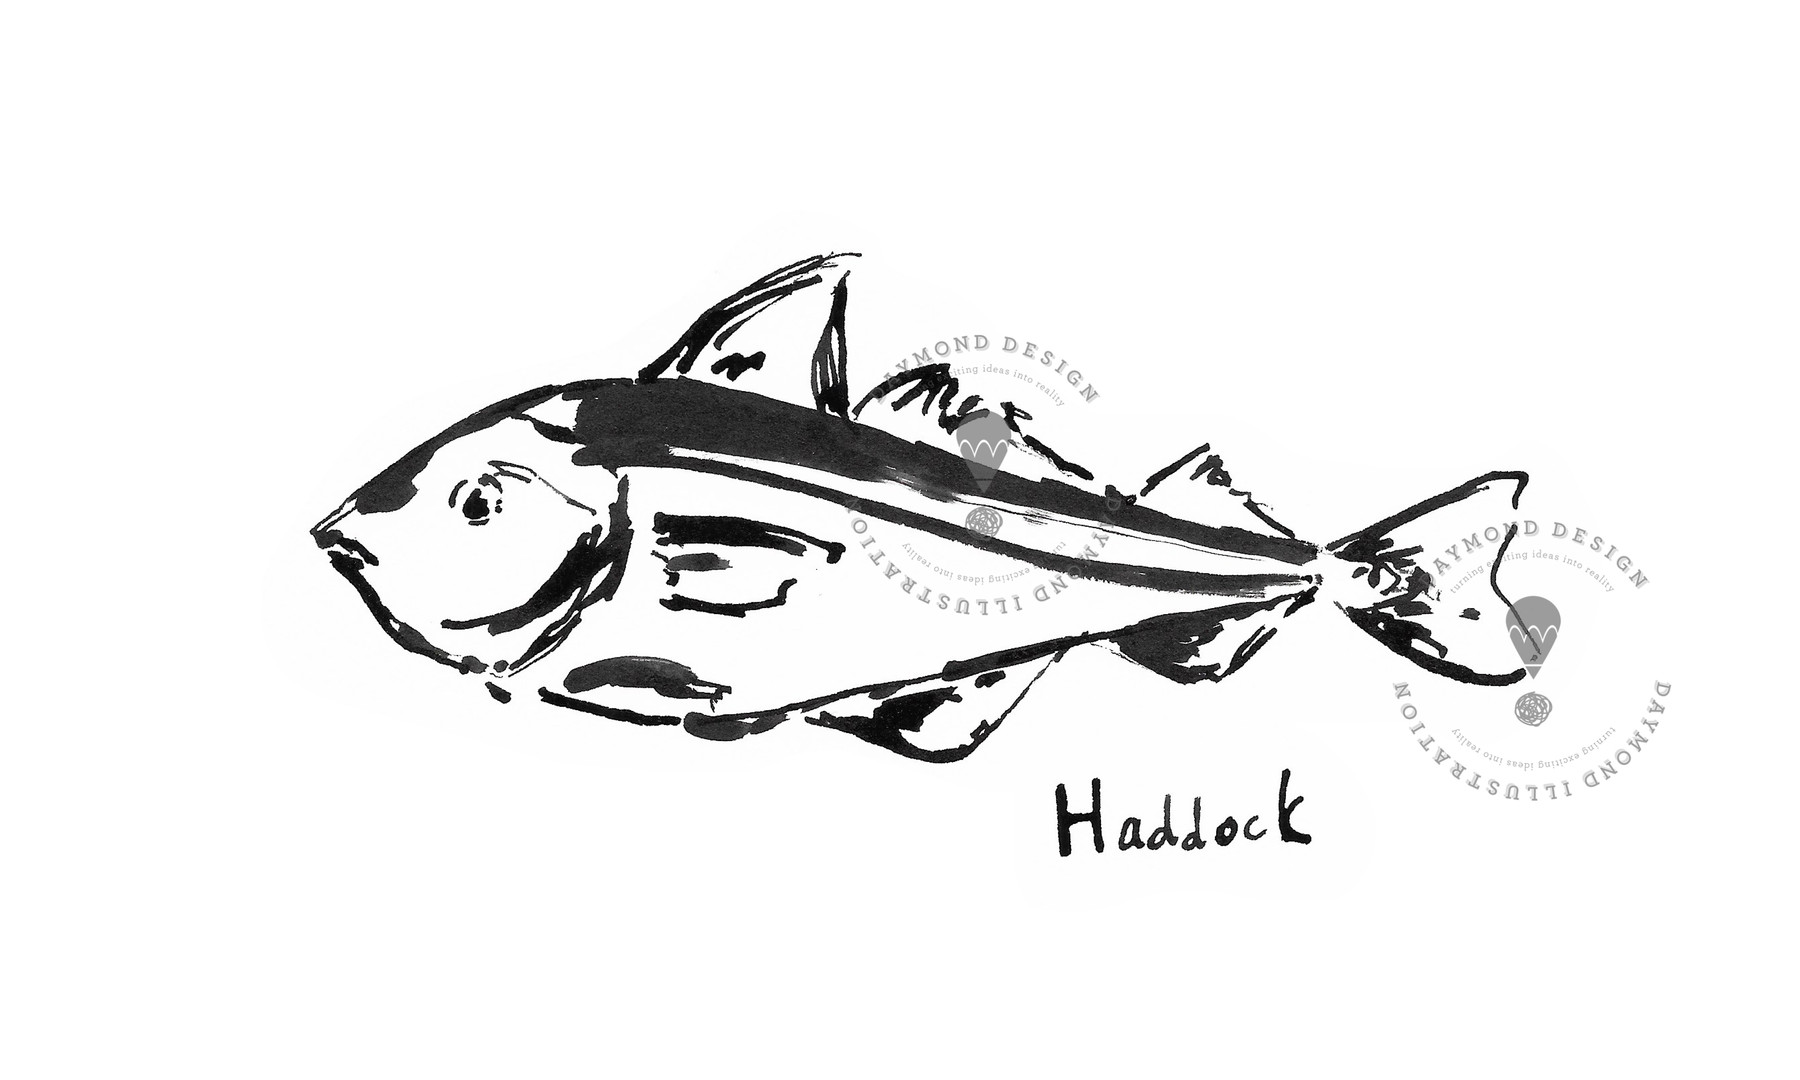 Haddock fish brush ink b&W food illustration by Jenny Daymond Design and illustration